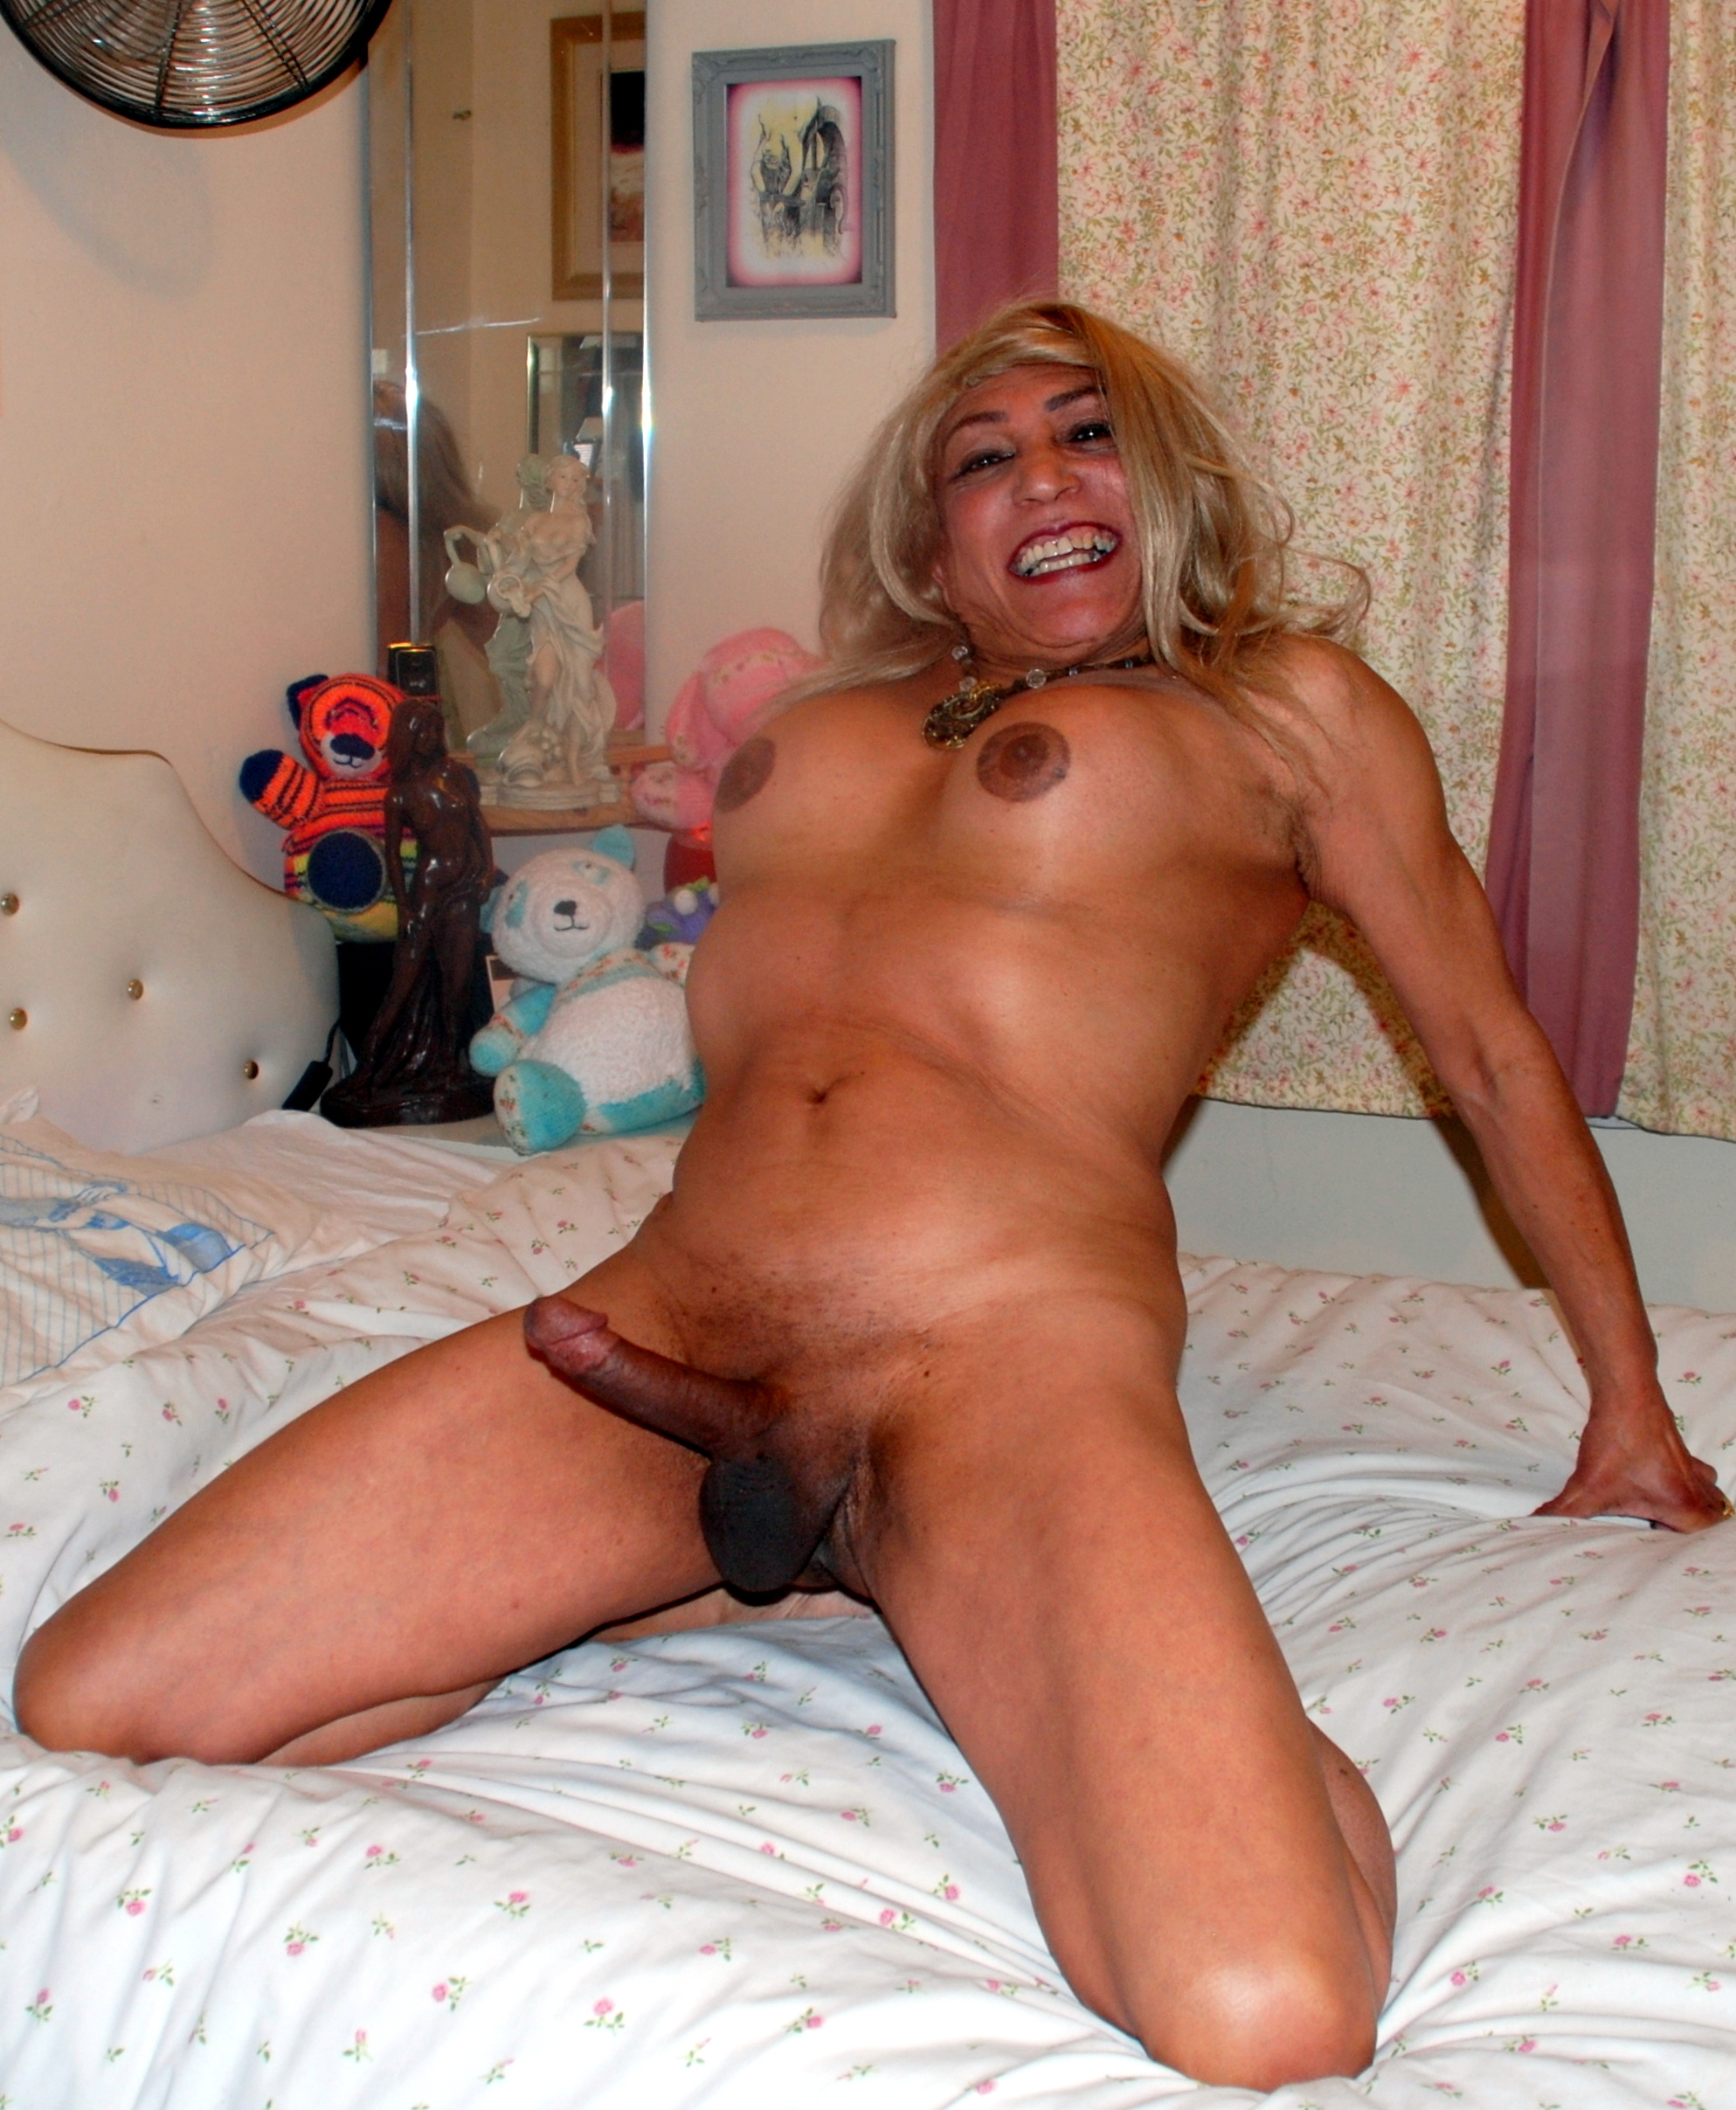 Free tranny pics video